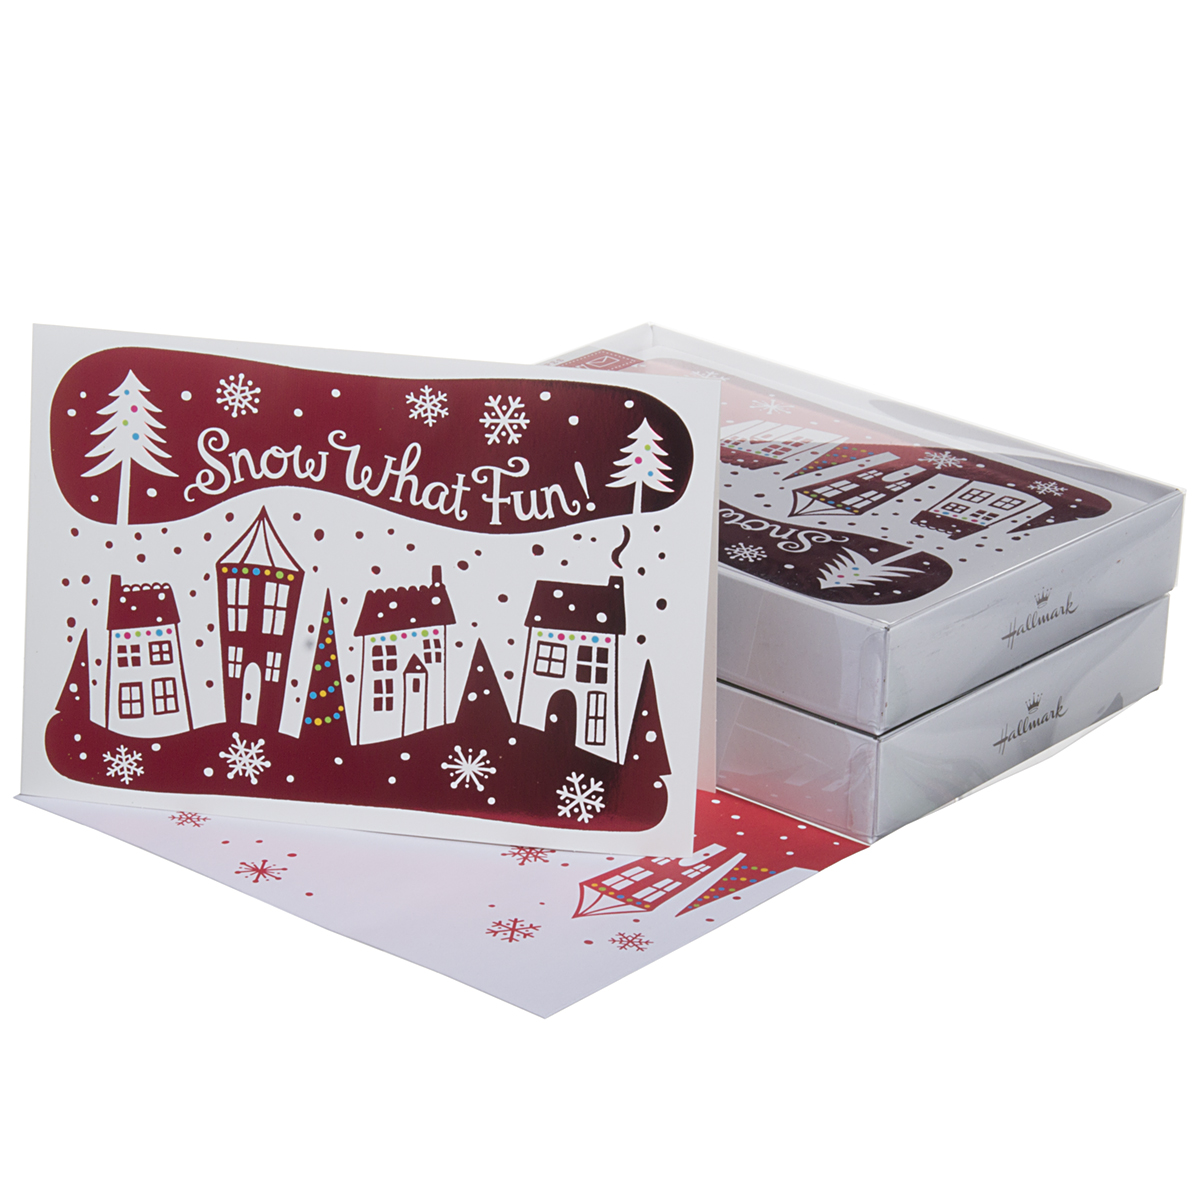 32 Pack Hallmark Christmas Greeting Cards With Envelopes Holiday Box